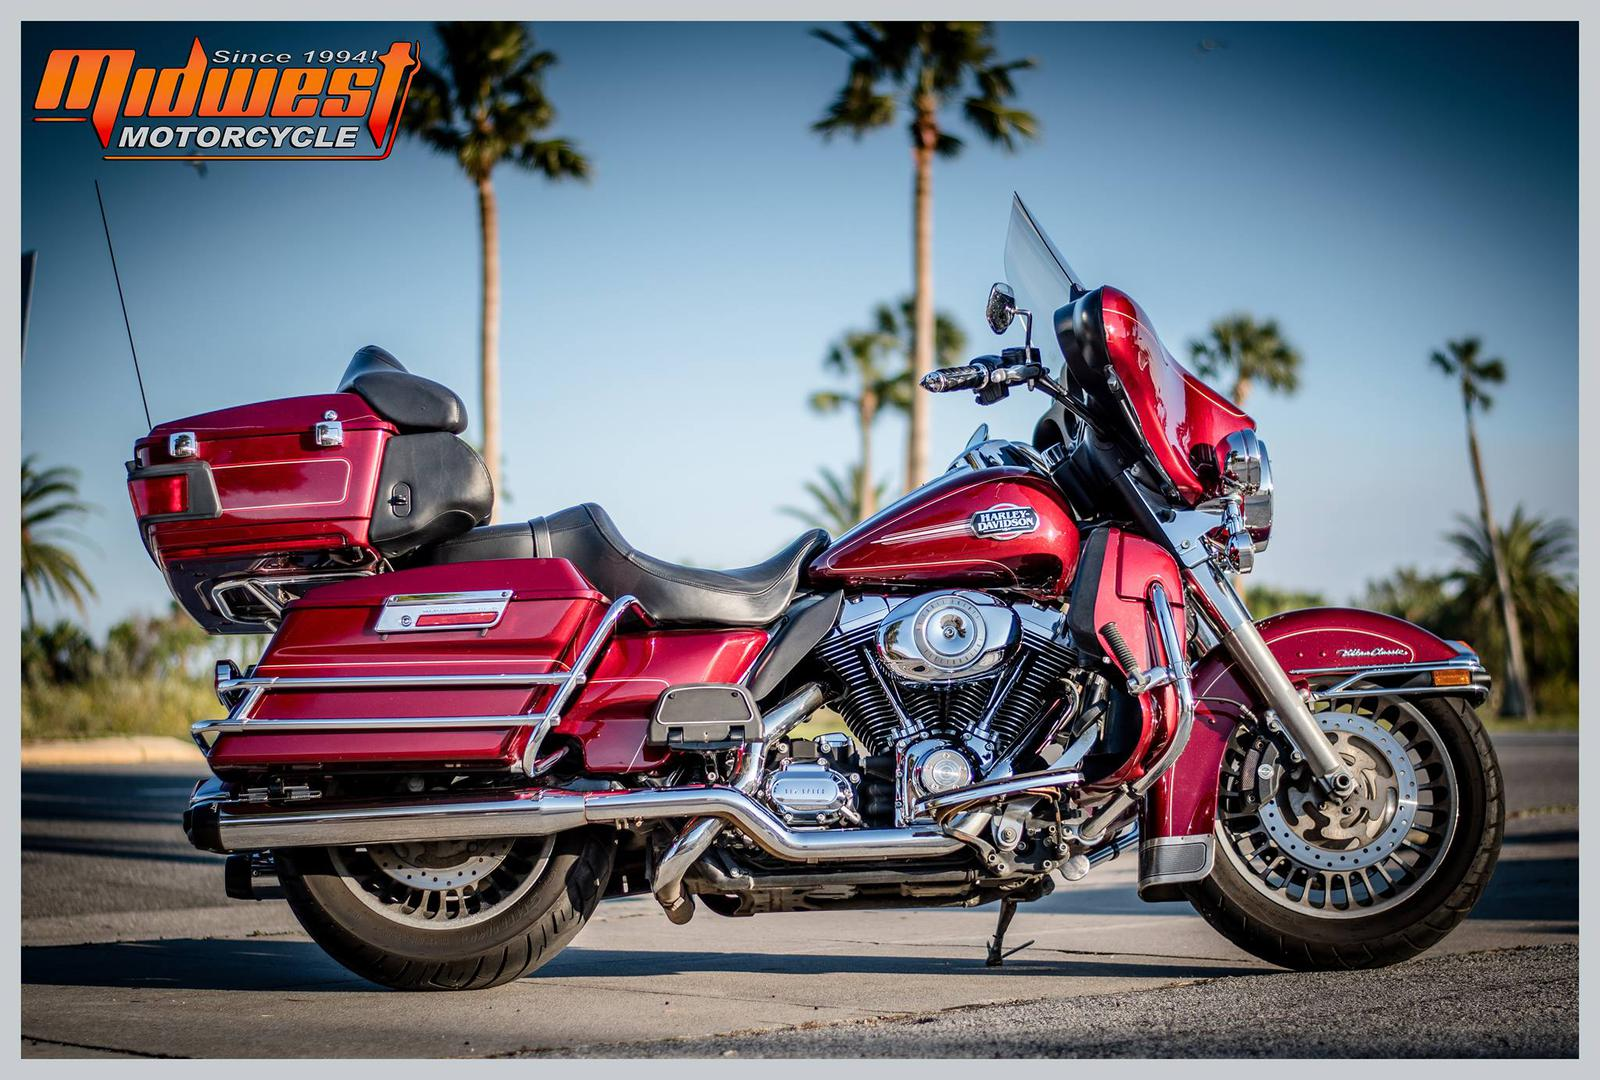 2010 harley-davidson® electra glide ultra classic for sale in